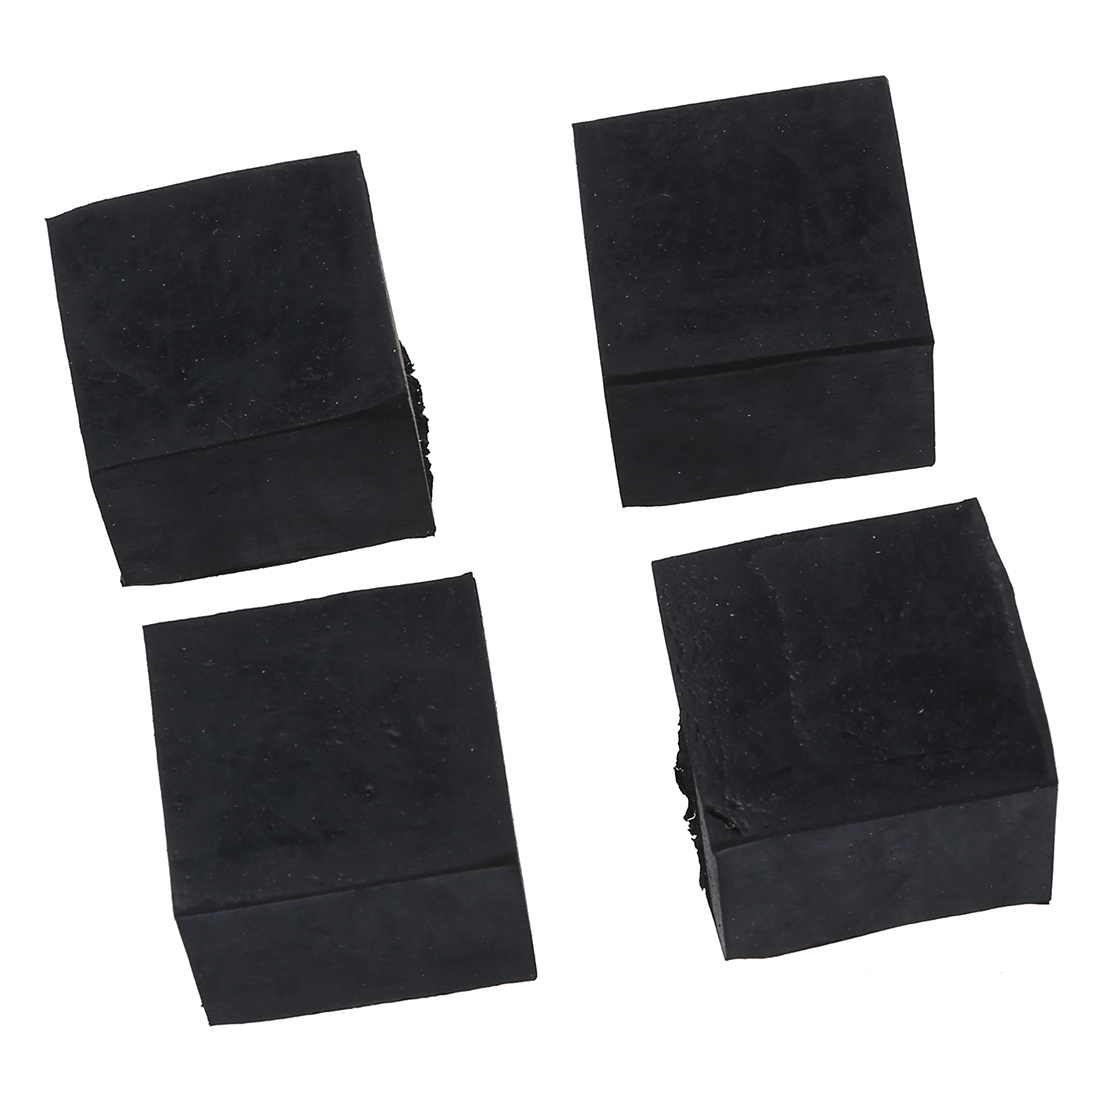 4 Pcs Black Chair Table Leg Rubber Foot Covers Protectors 28mm x 28mm